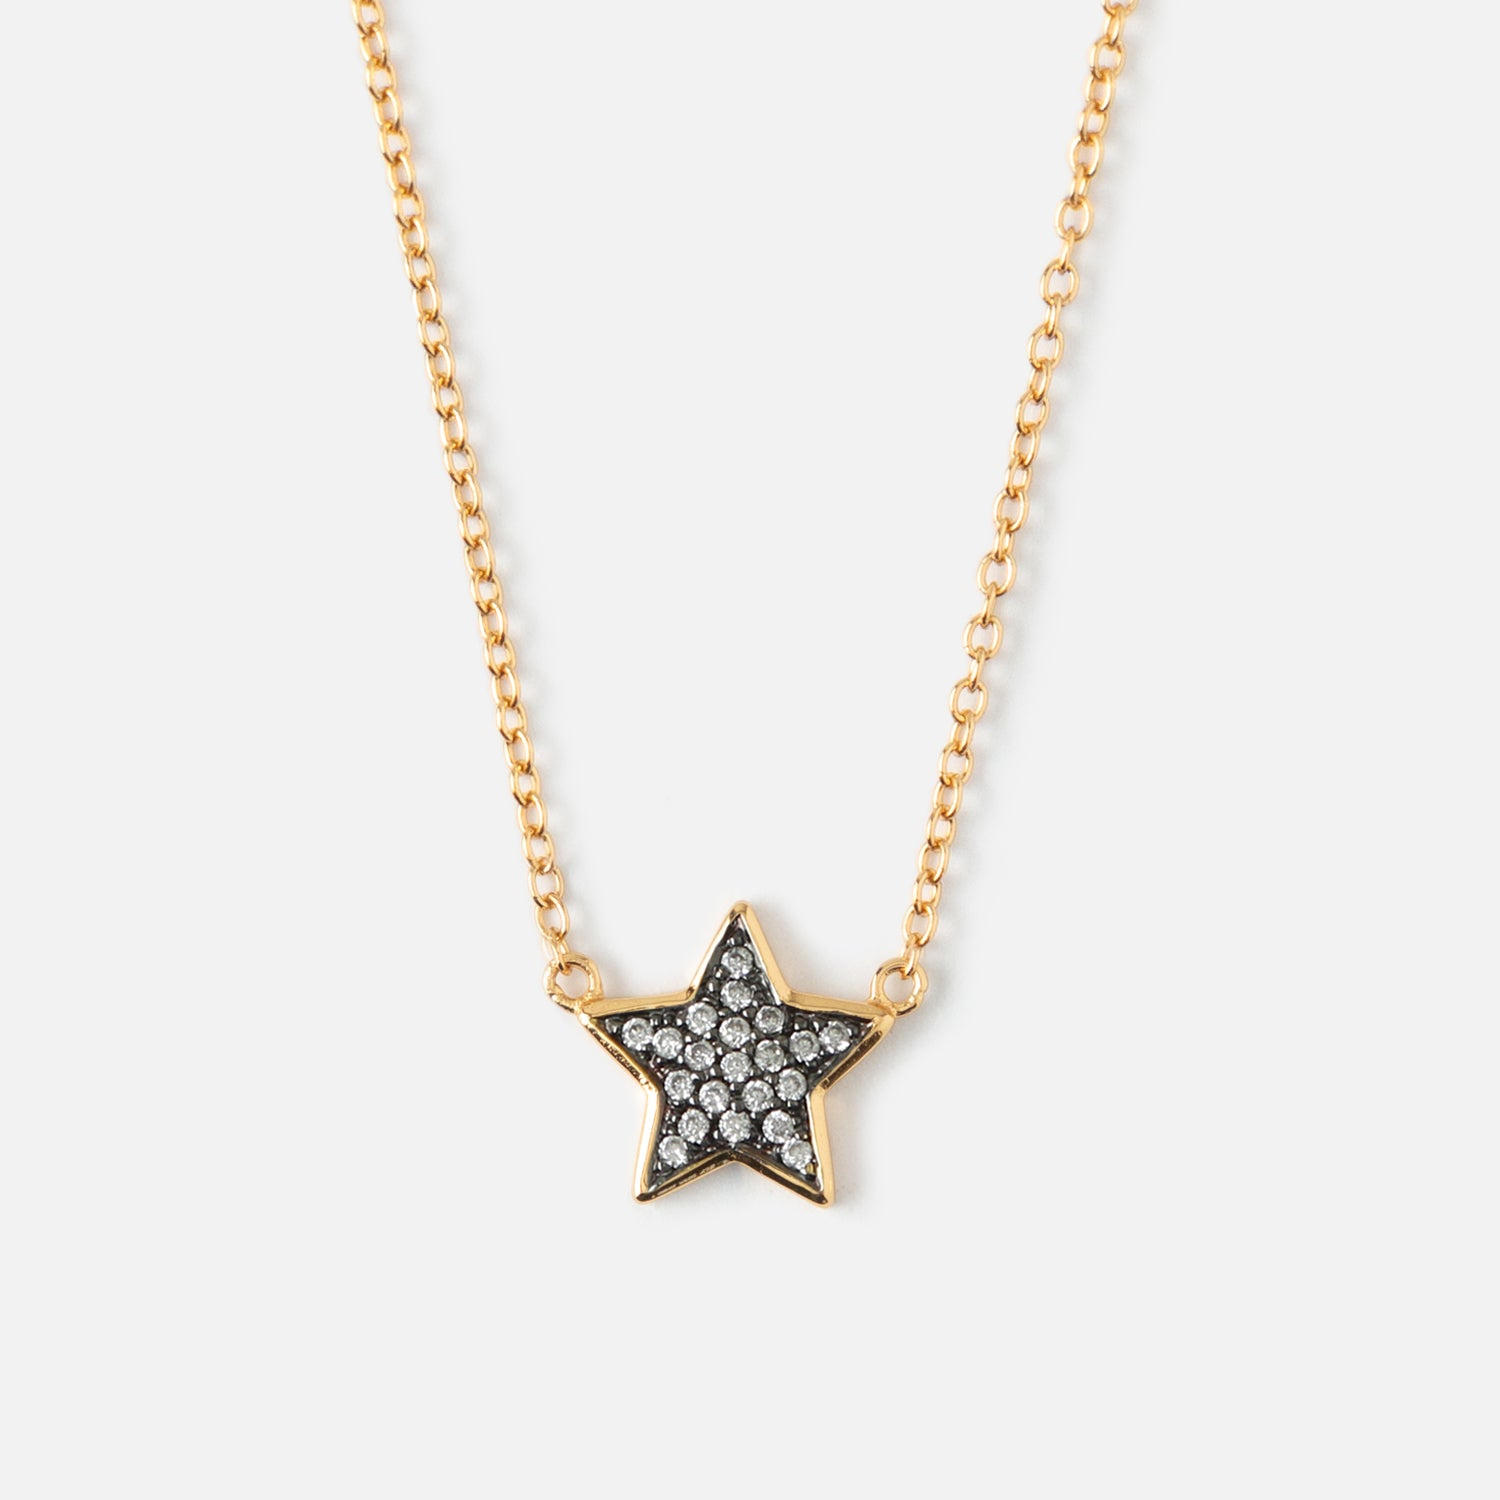 LUXE Crystal Star Charm Necklace